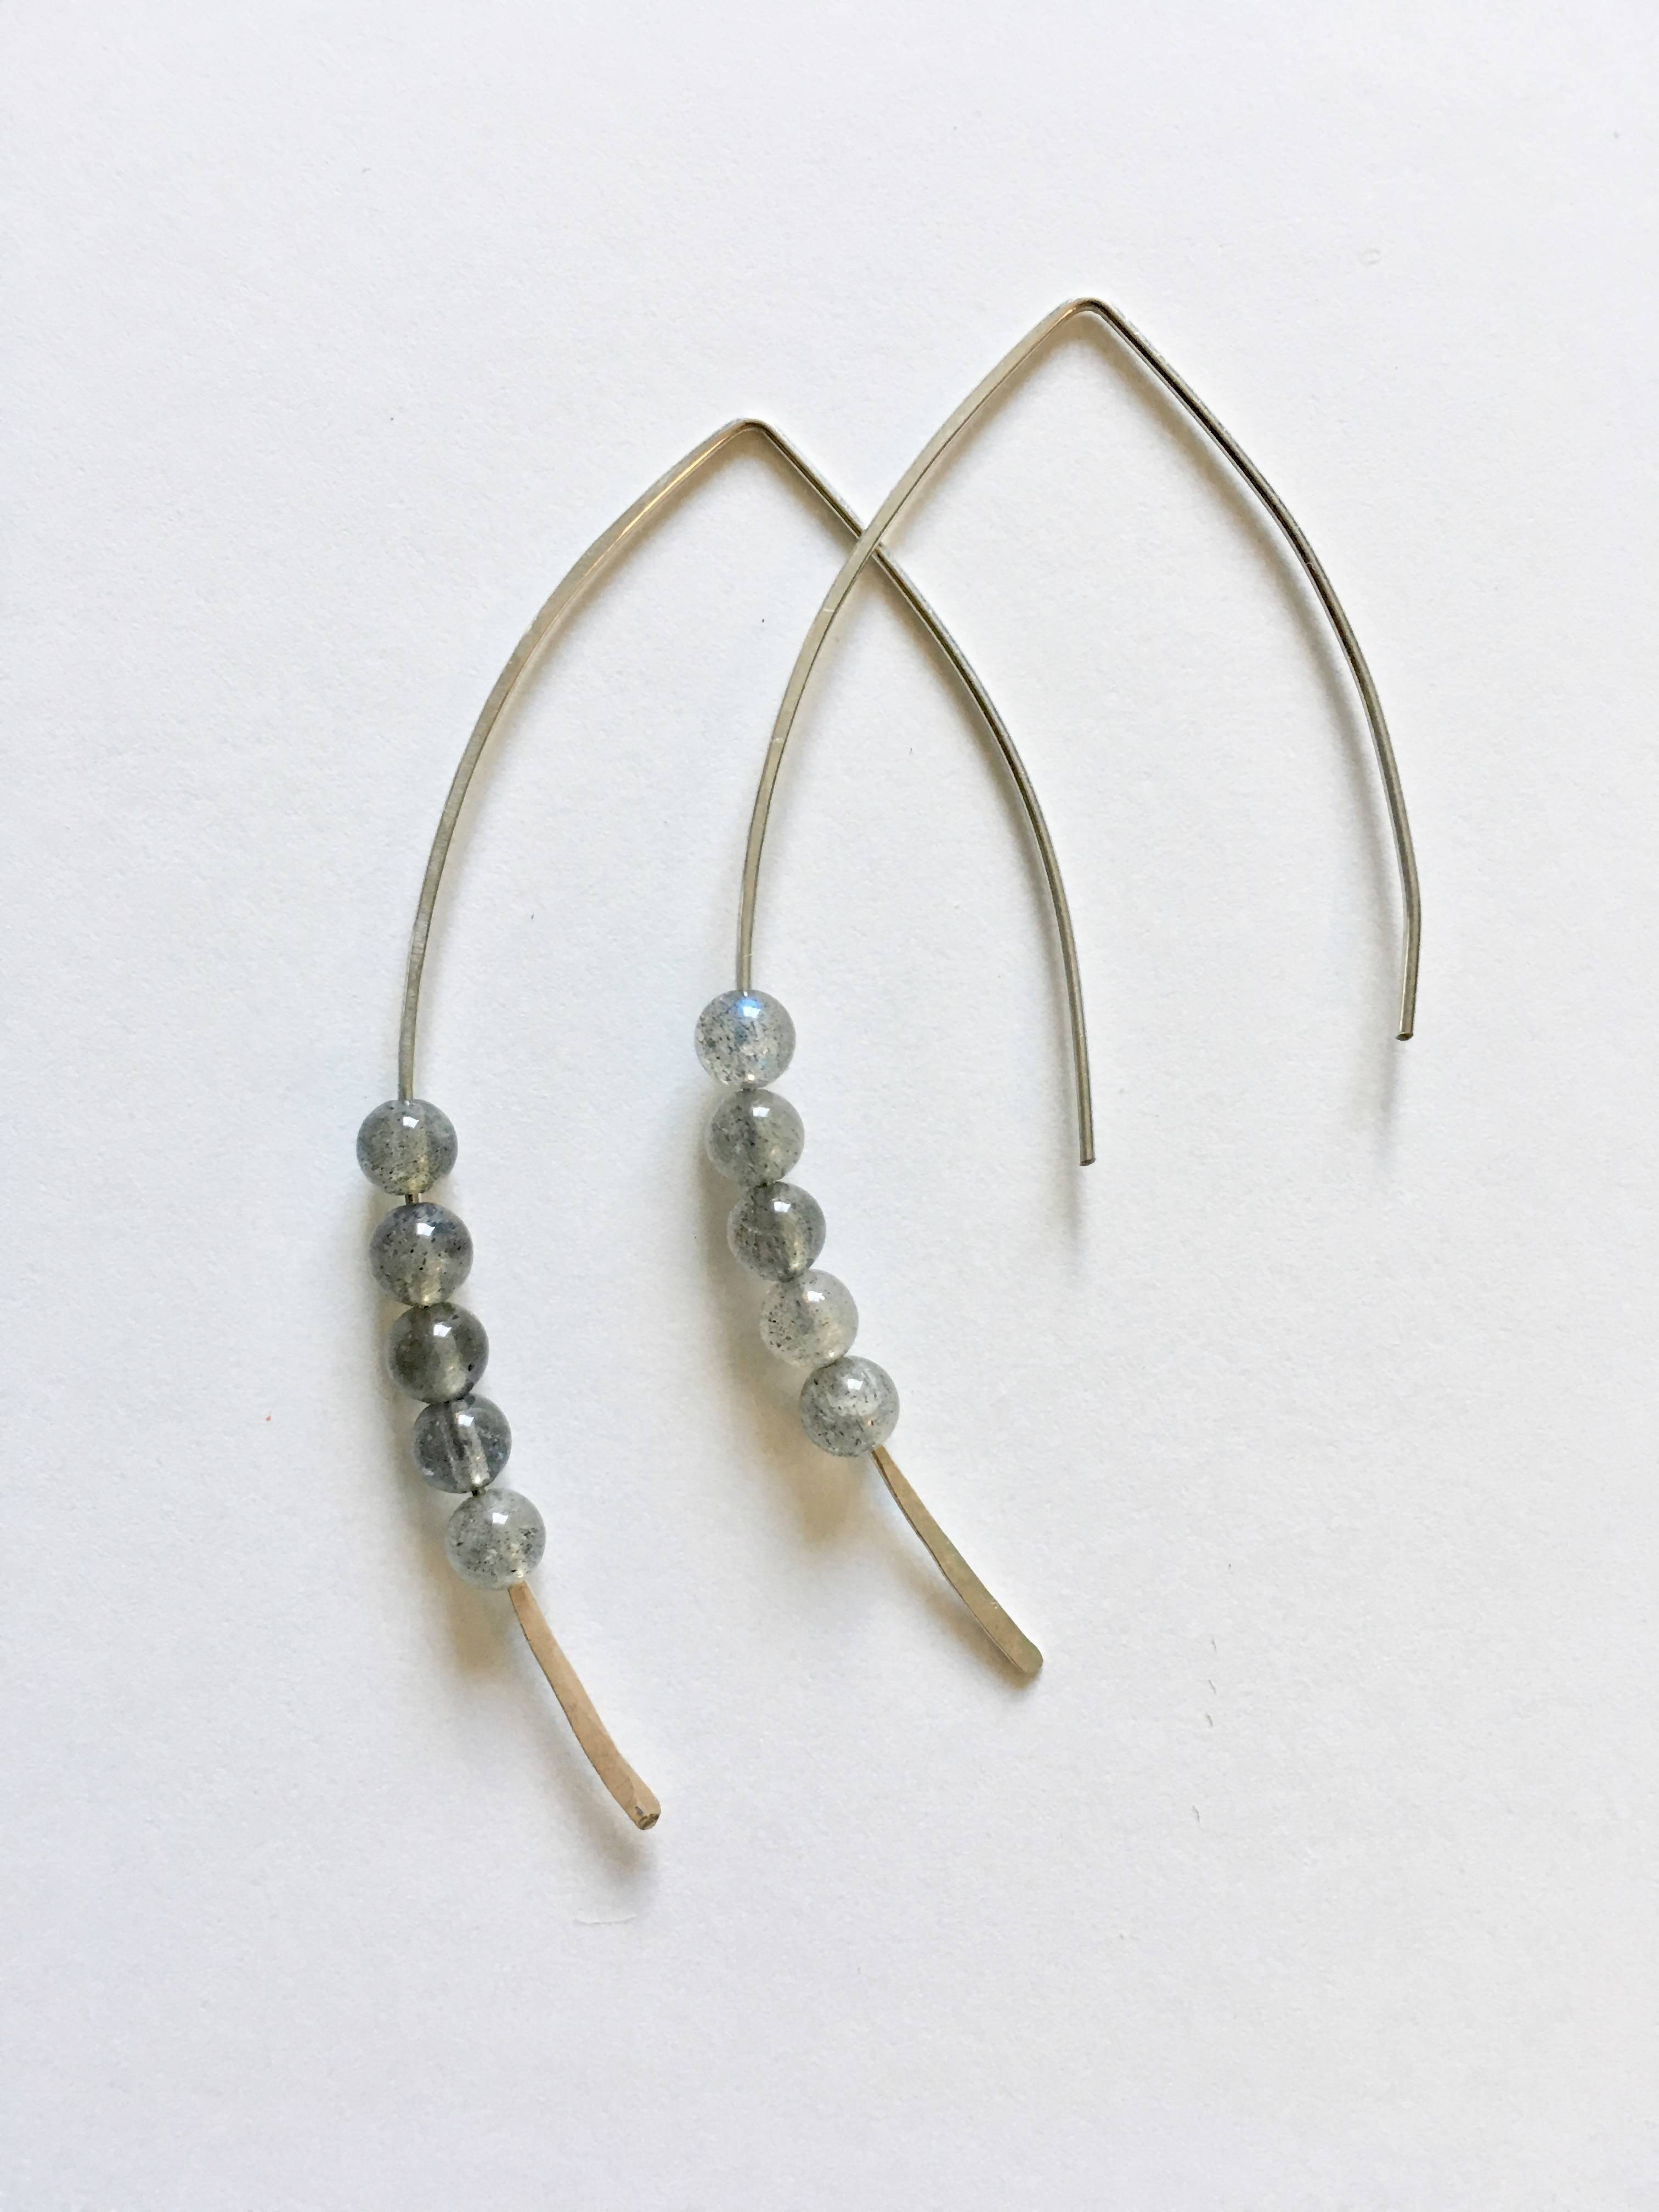 Round Labradorite Threader Earrings